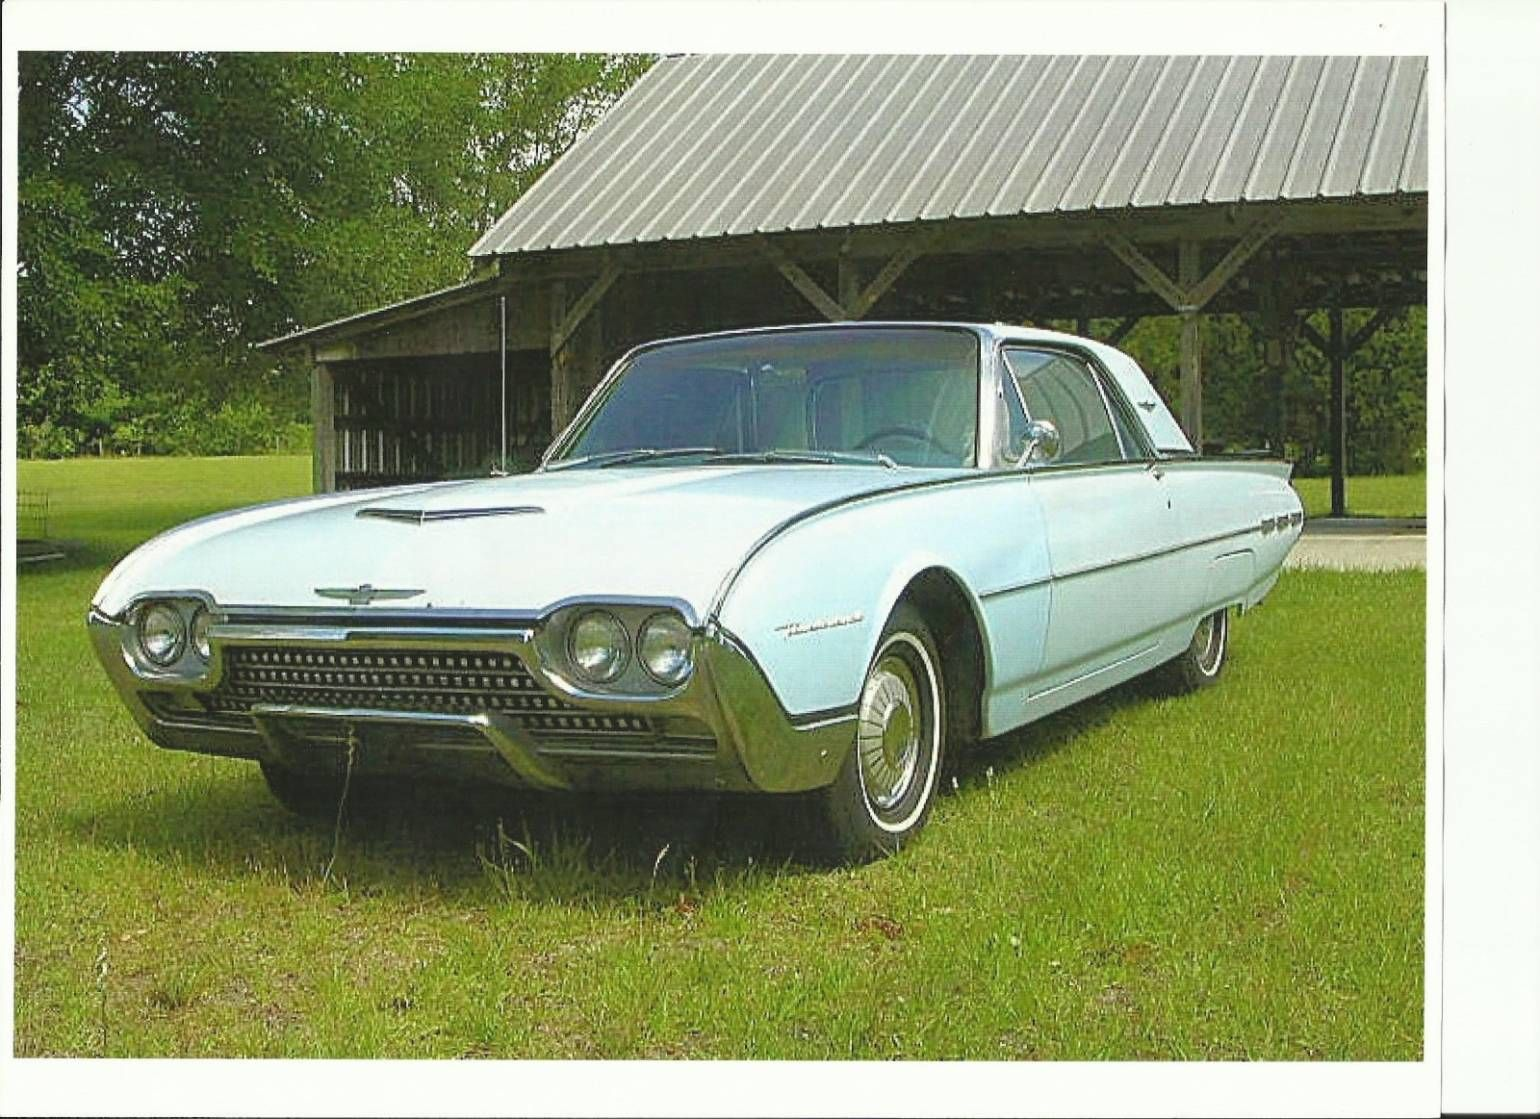 1962 Ford Thunderbird | Thunderbirds | Pinterest | Ford thunderbird ...